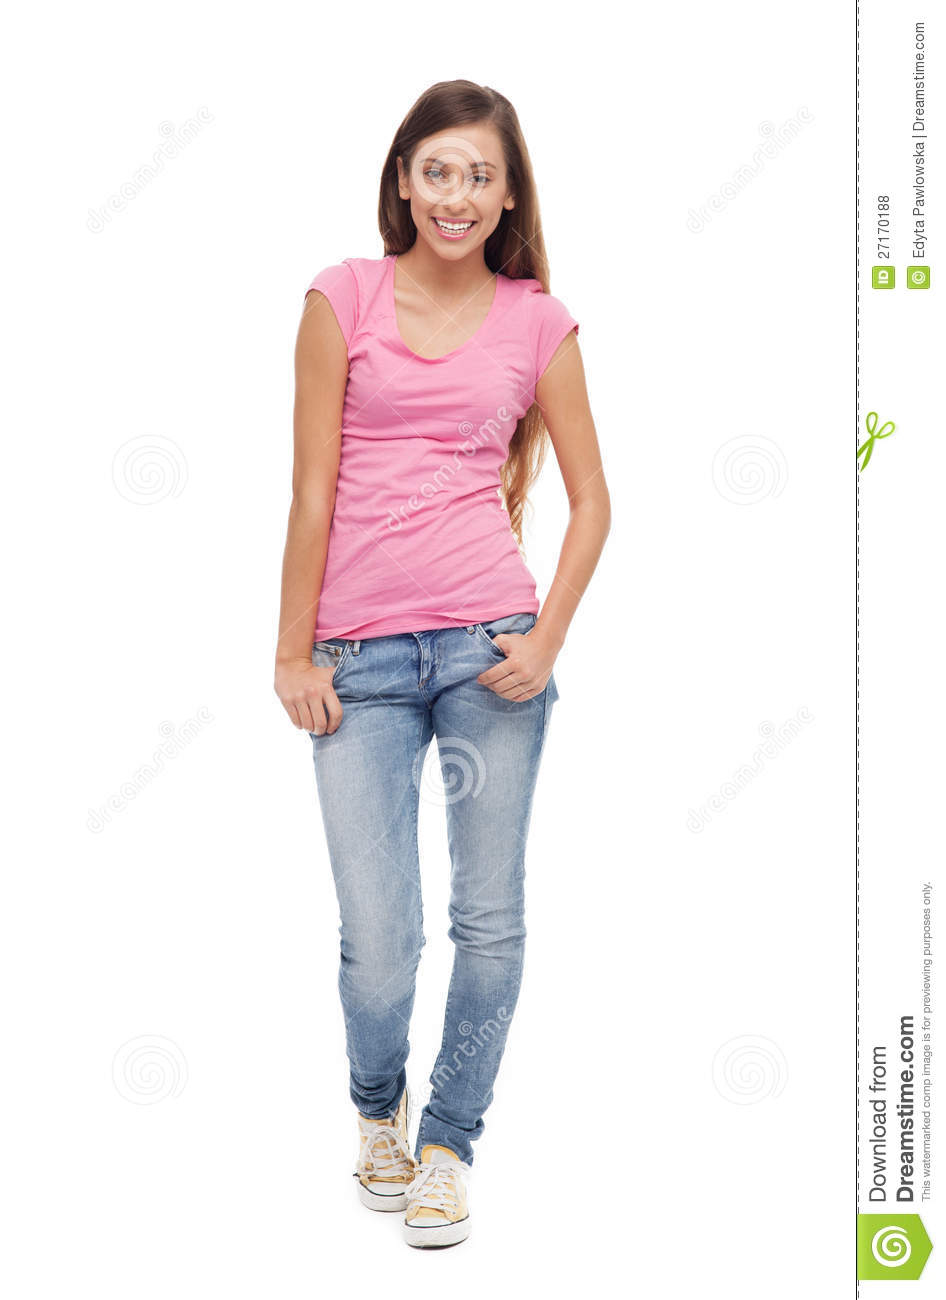 Female Teenager Standing Royalty Free Stock Photos - Image: 27170188